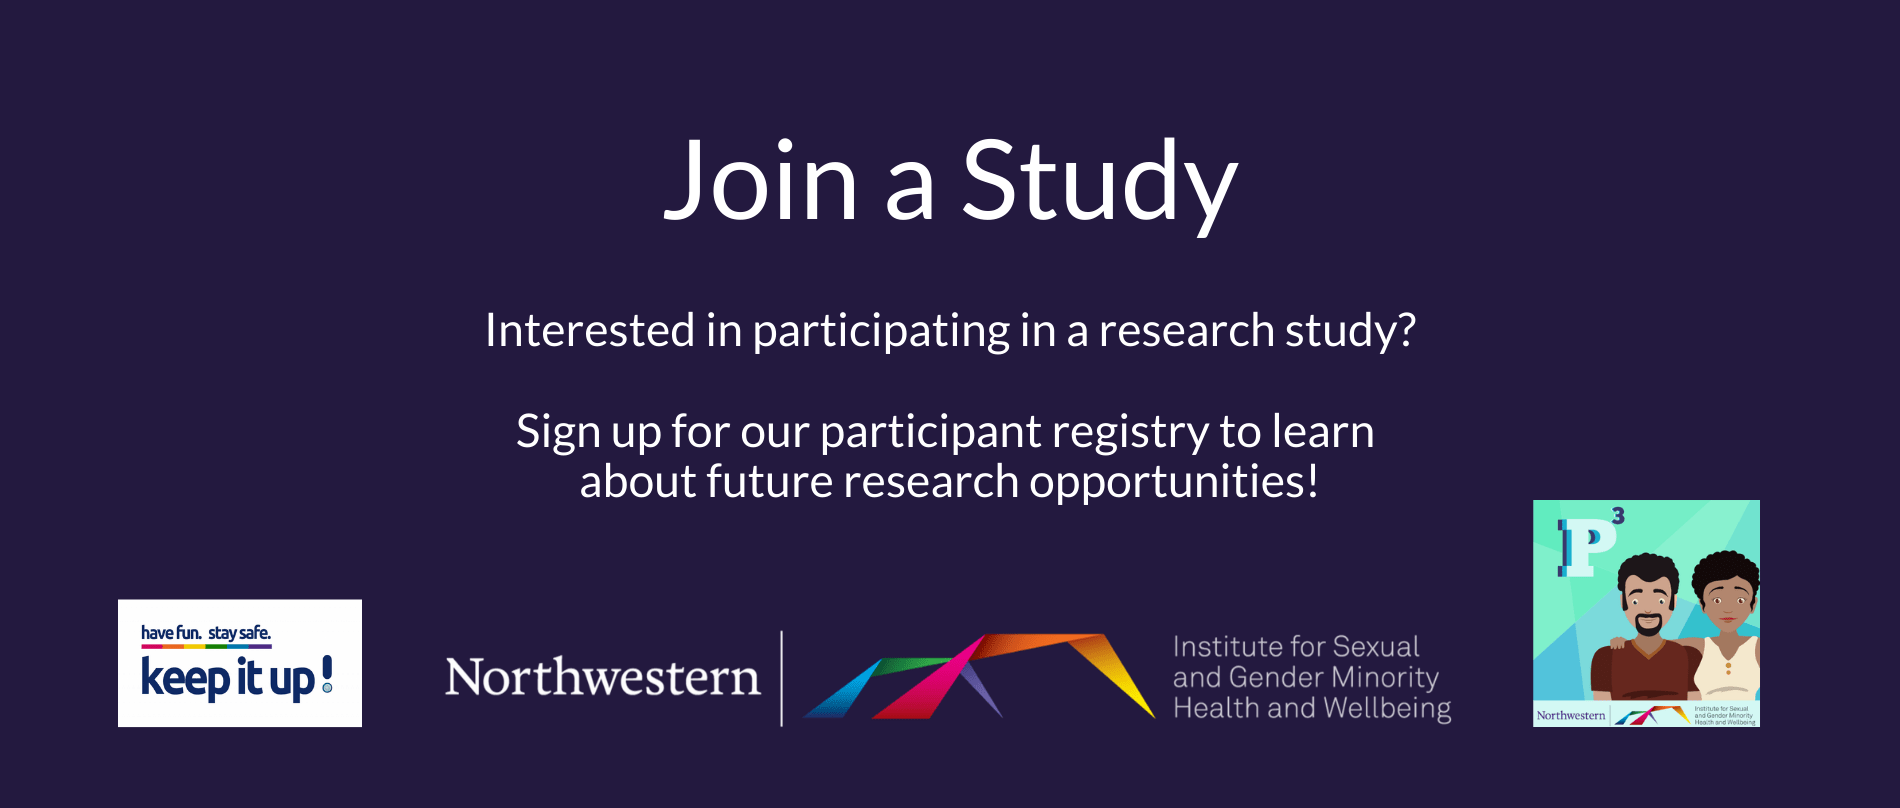 """Join a Study. Interested in participating in a research study? Sign up for our participant registry to learn about future research opportunities!"""